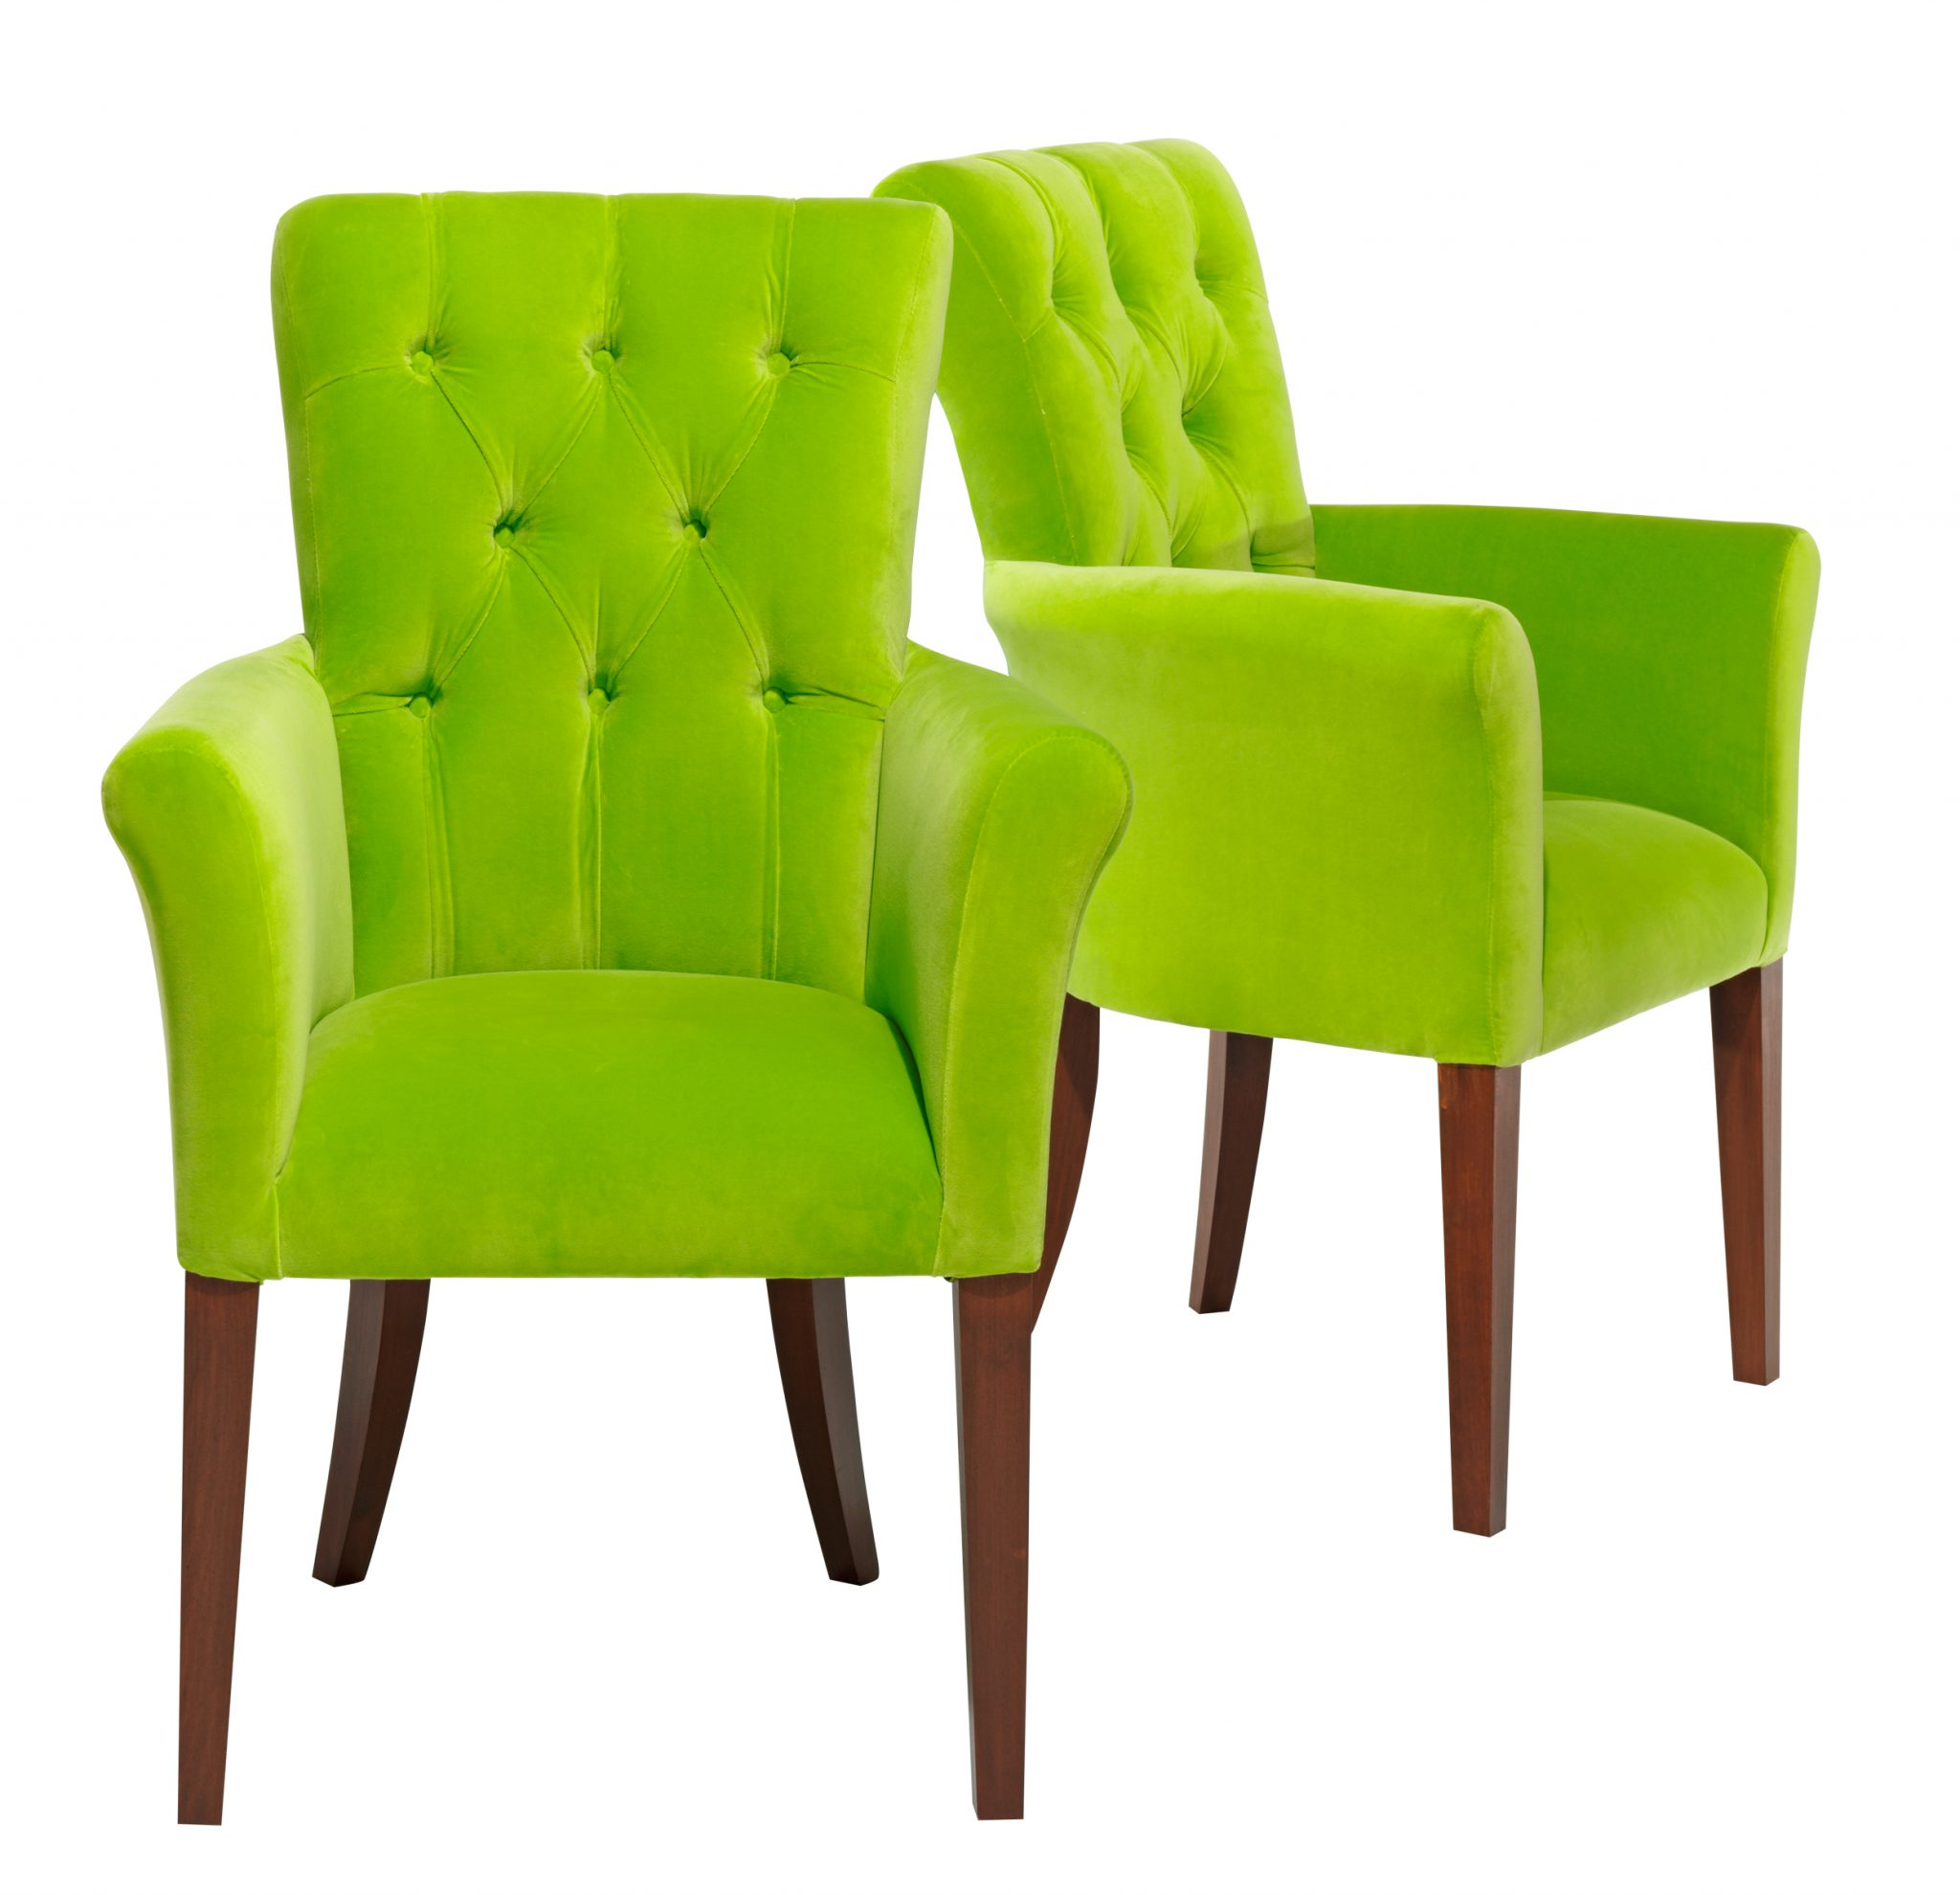 Chair Lime Green Chairs Gbp495 Sofadesign Co Uk 0208 518 5443